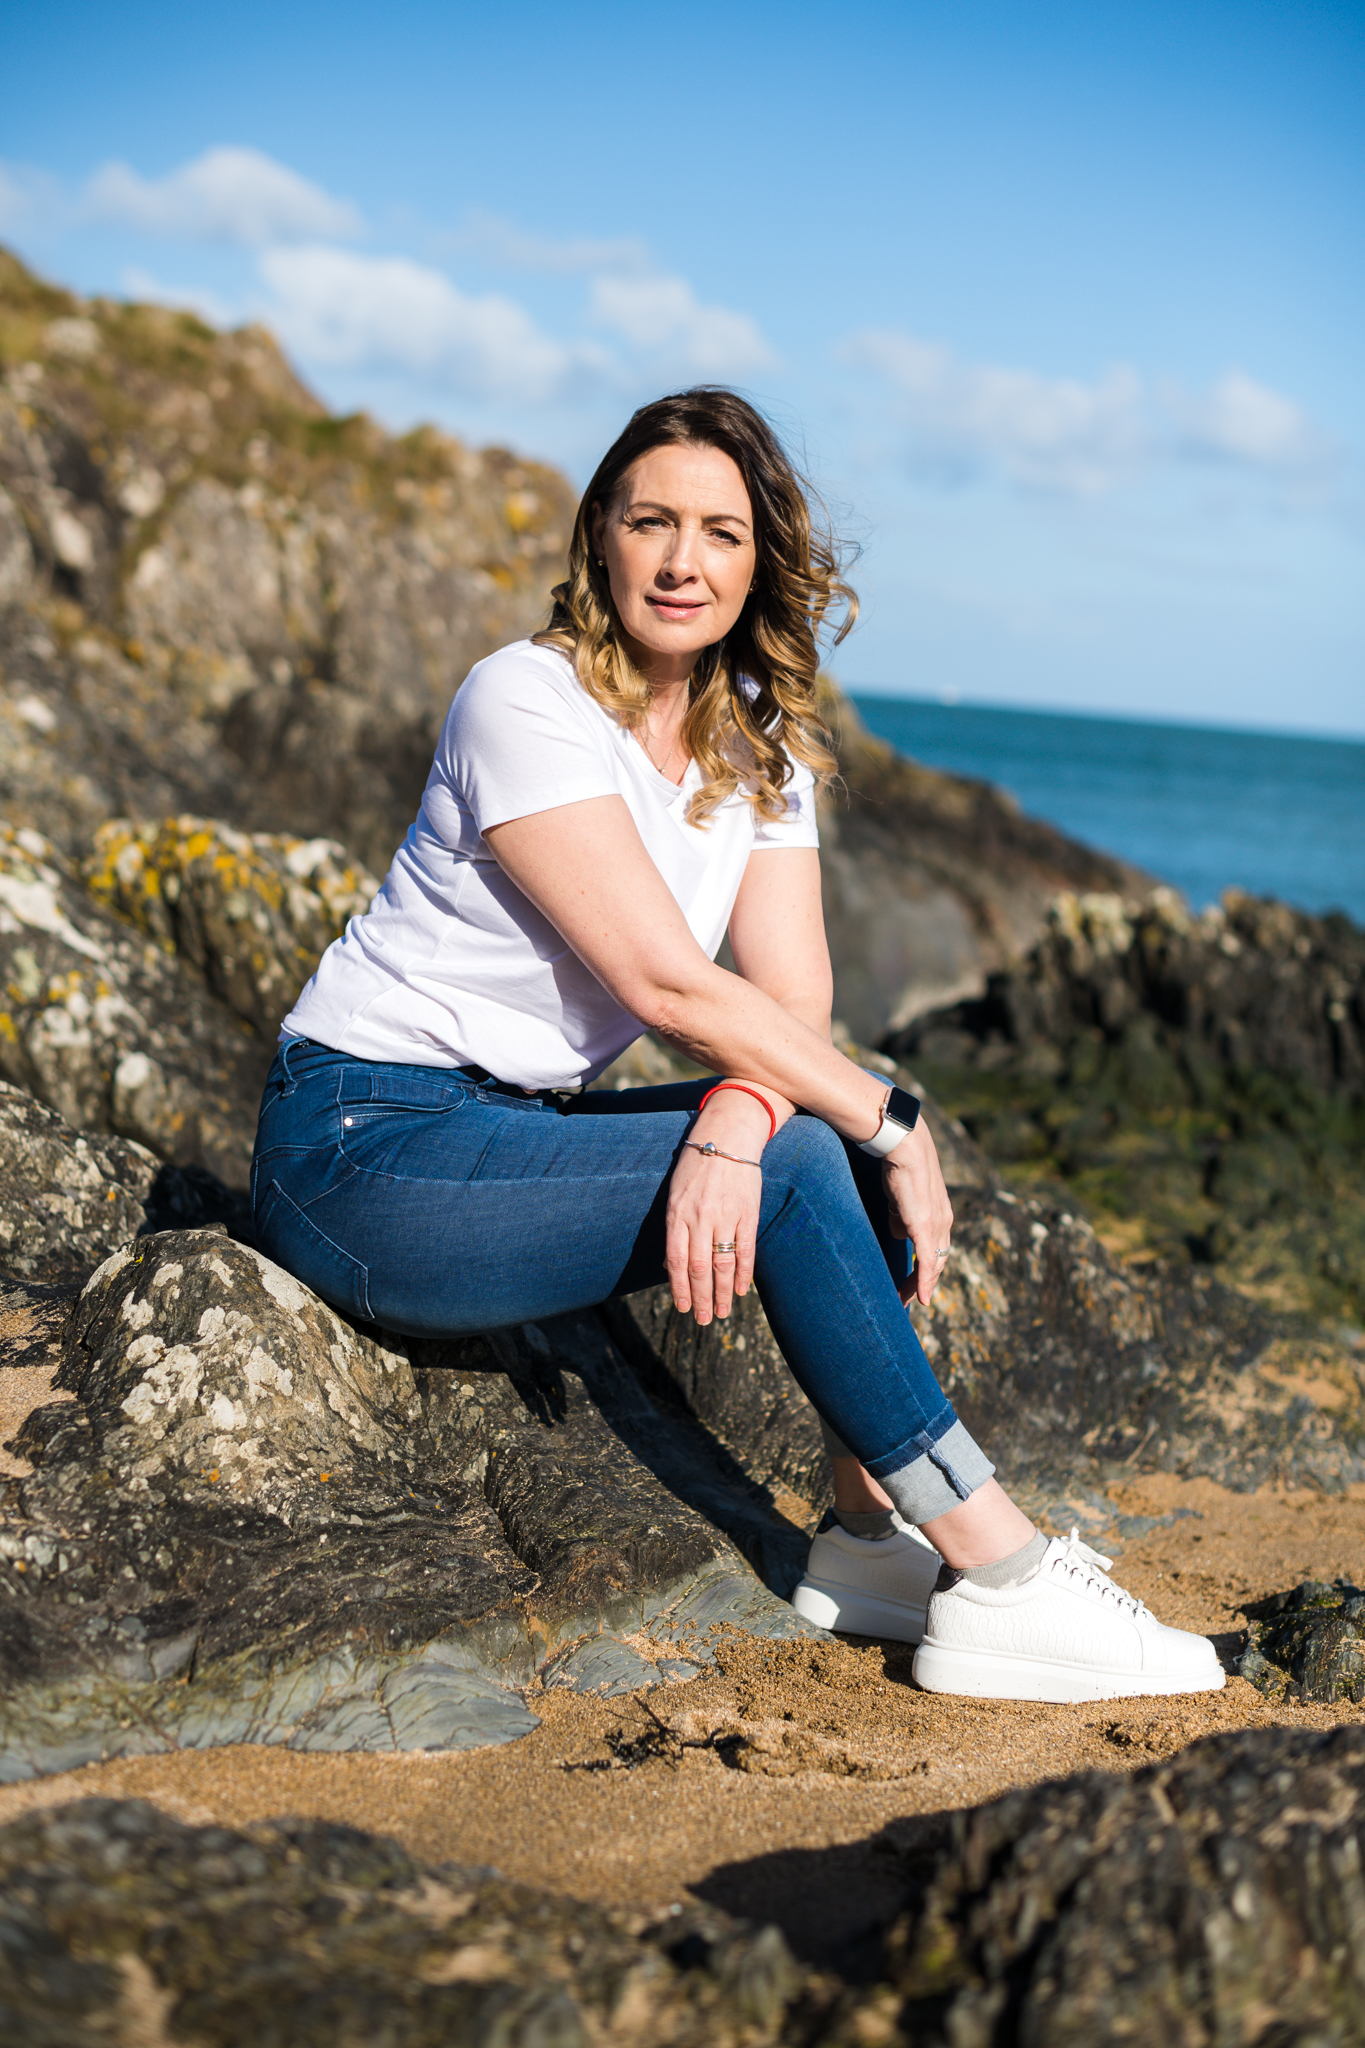 Franchine Young Ireland Collette Creative Photography Belfast Northern Ireland